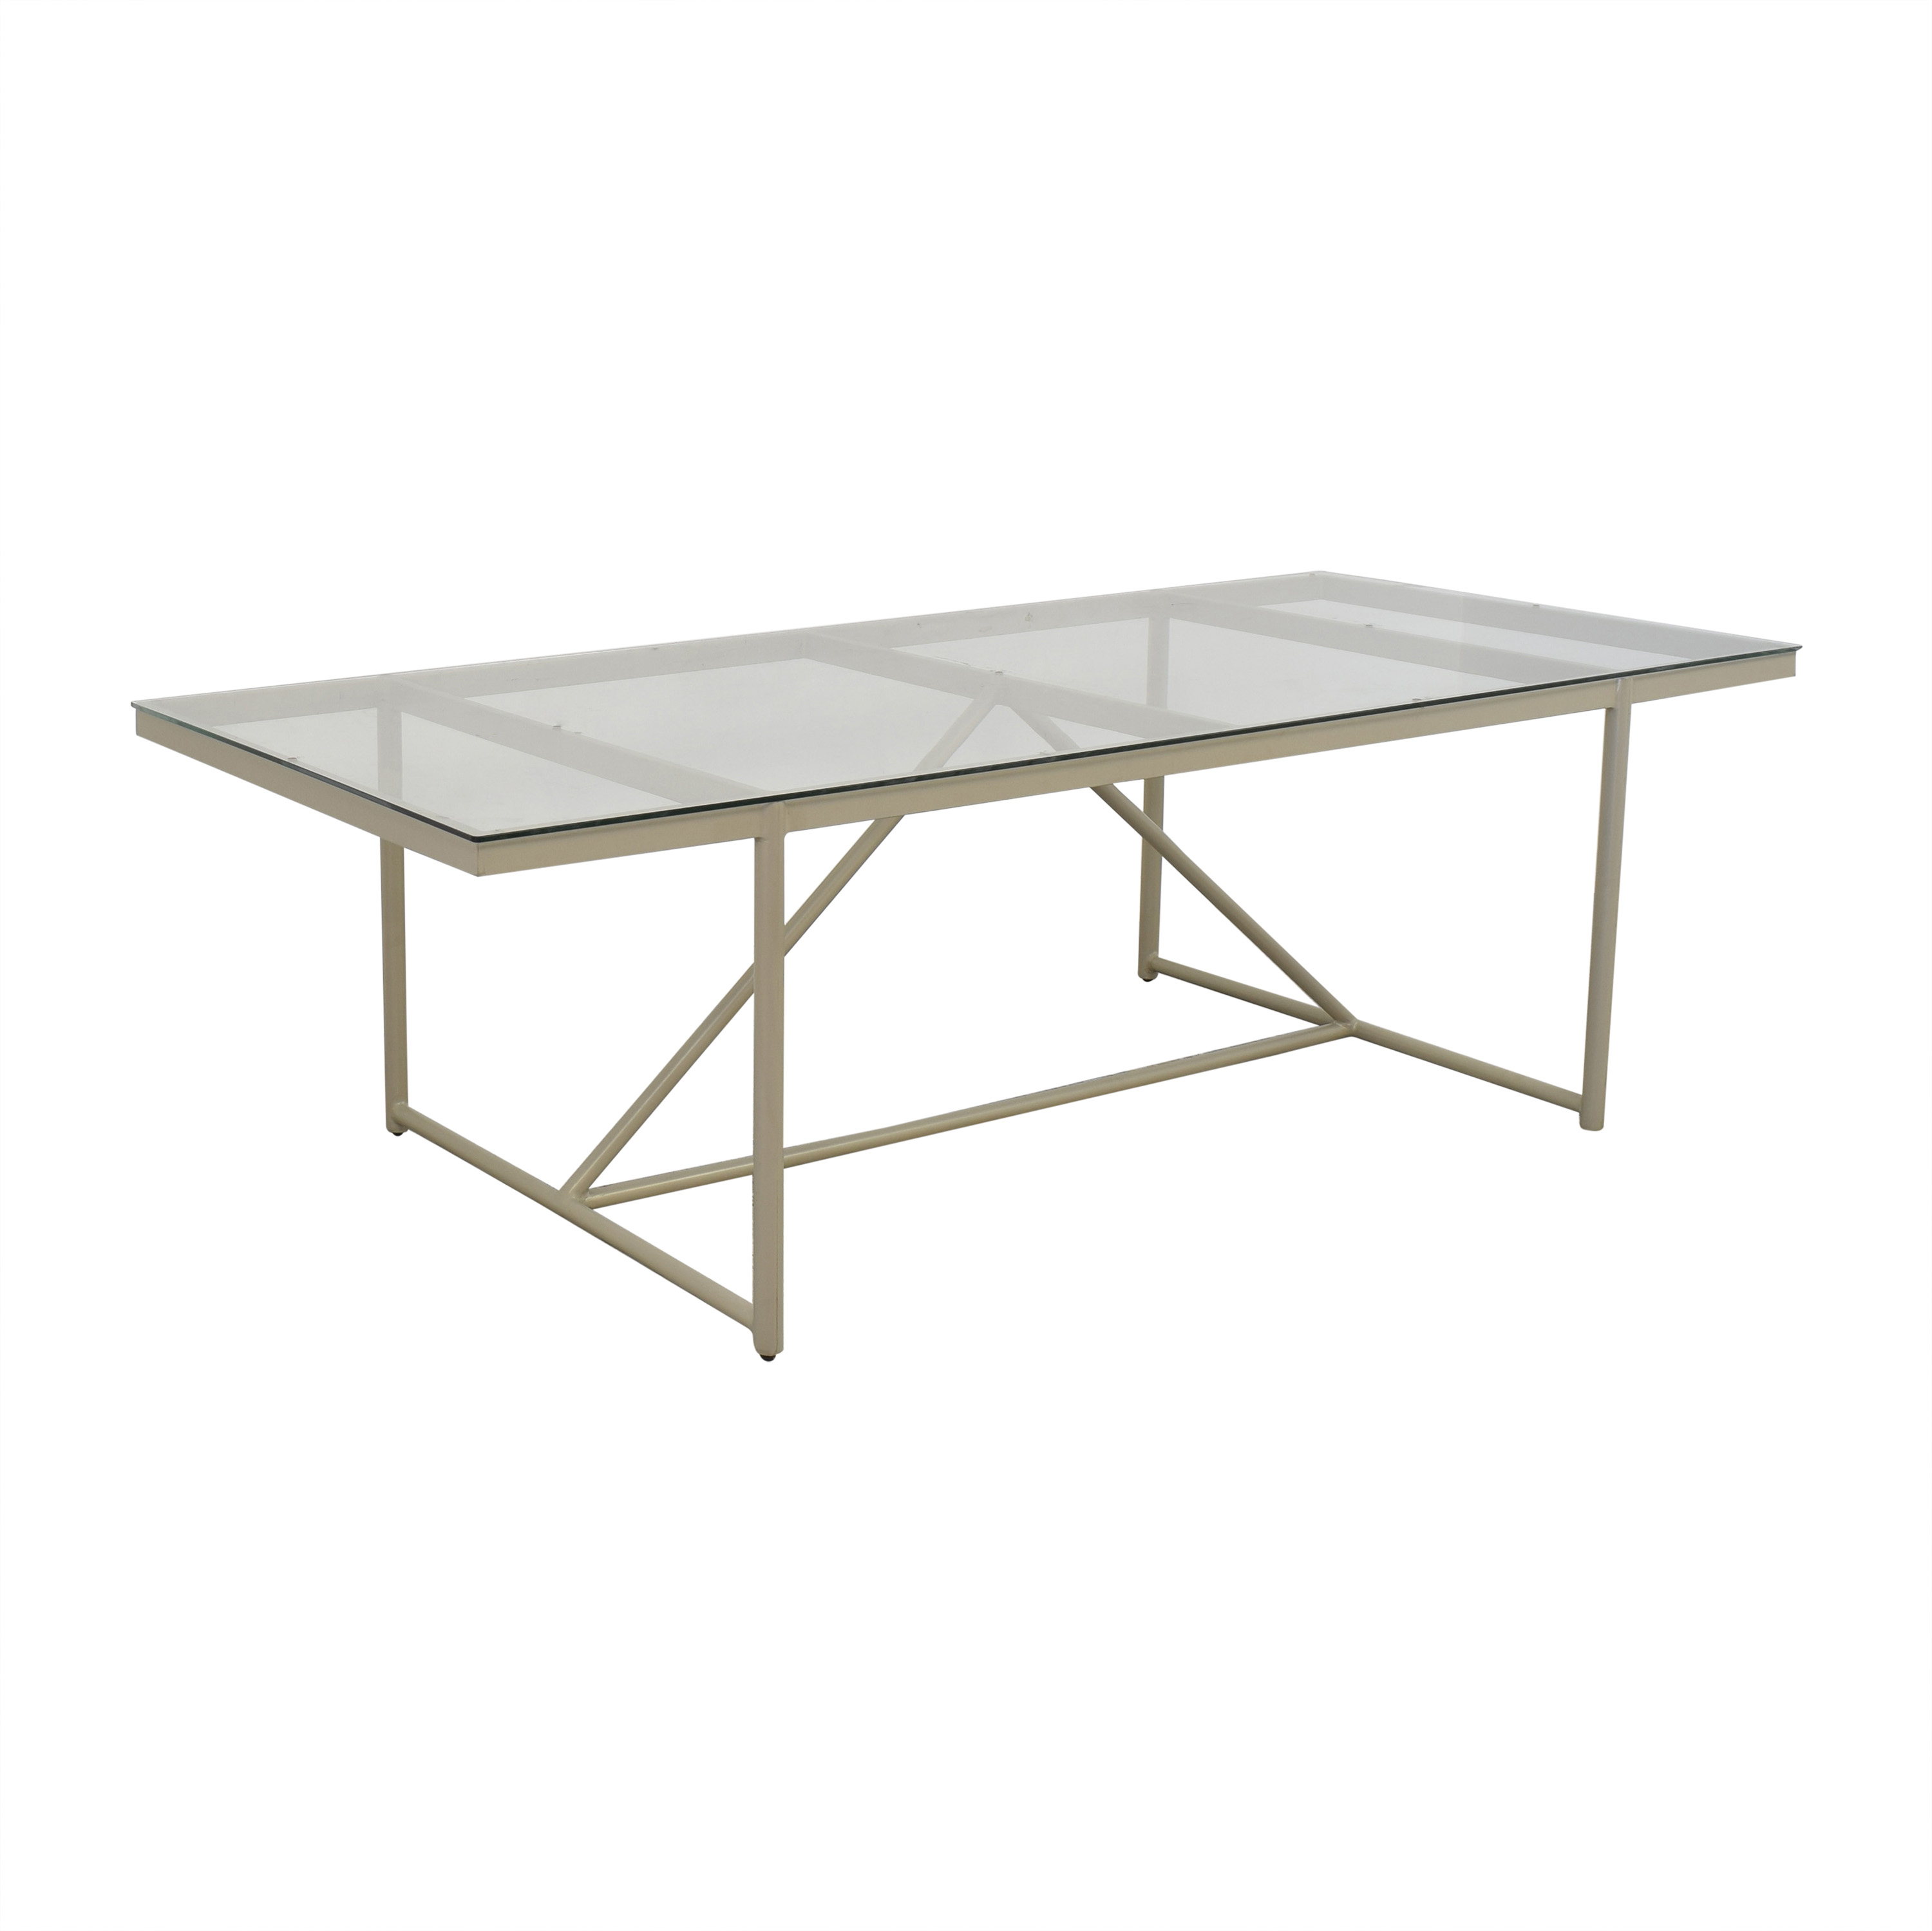 Frontgate Frontgate Enzo Rectangular Dining Table for sale